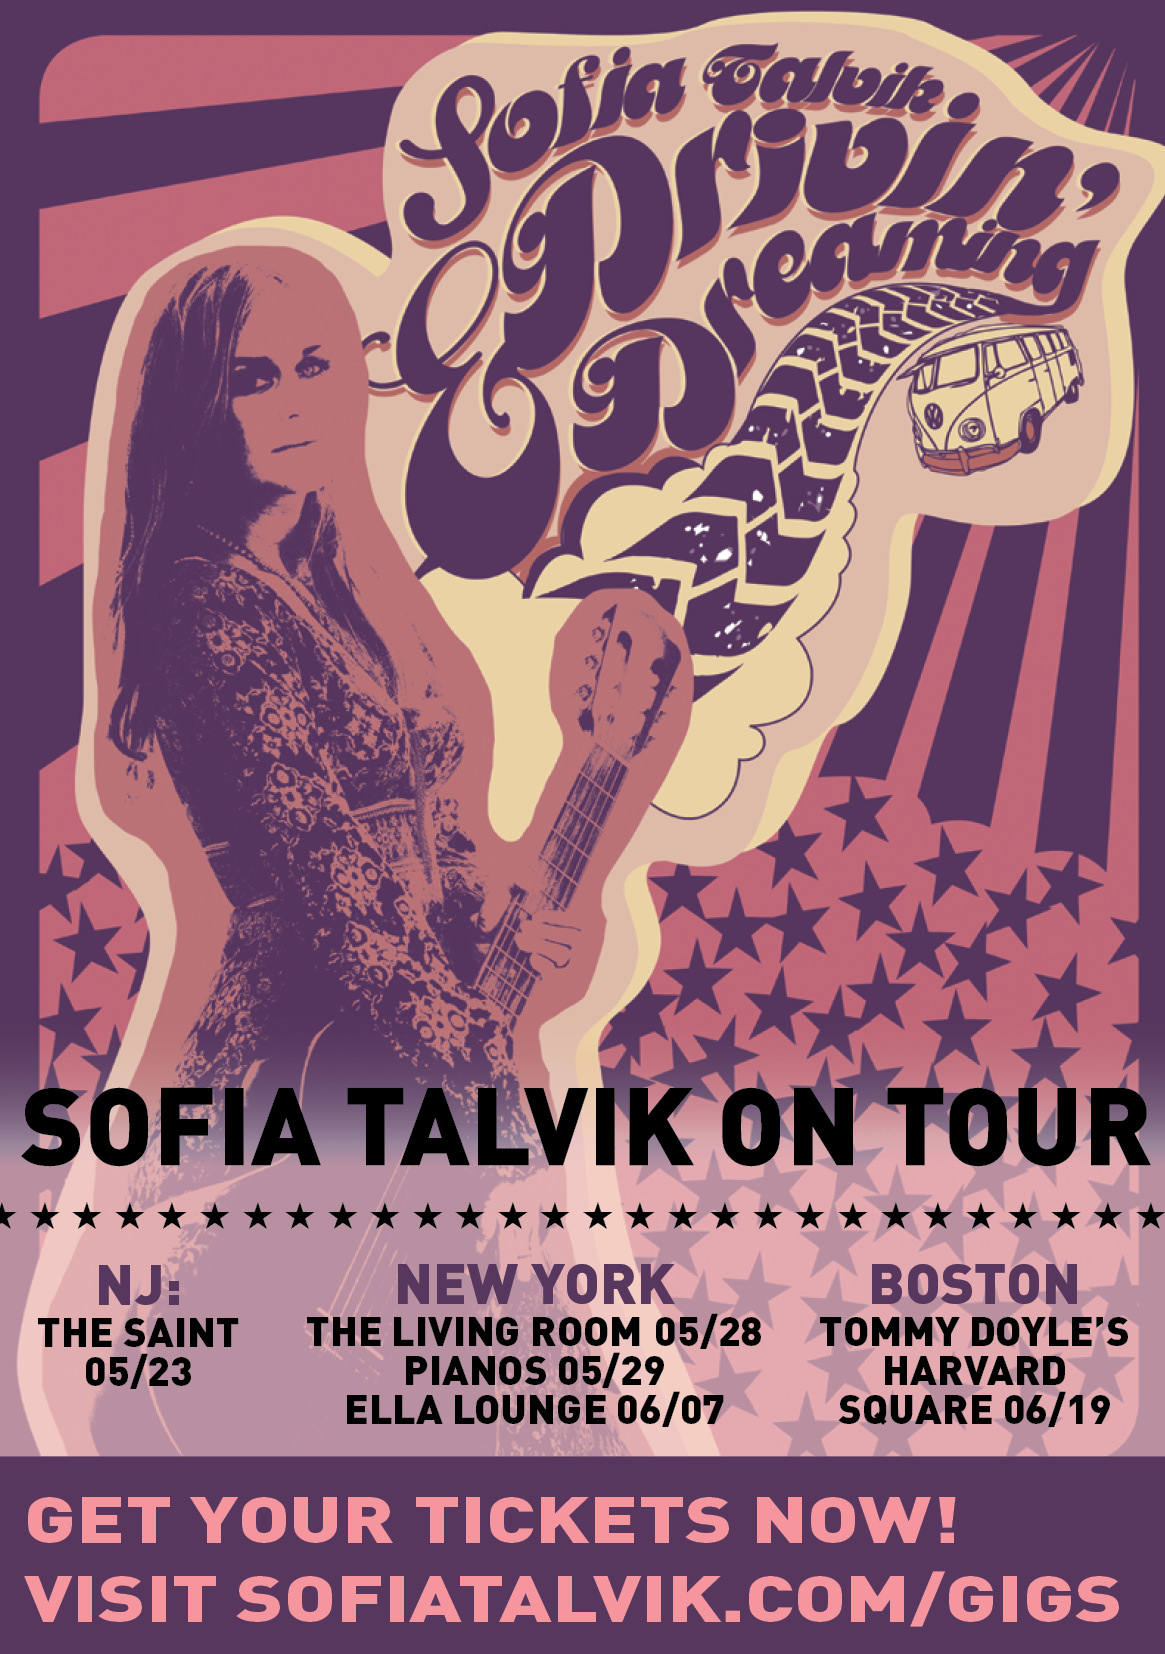 Upcoming shows – get tickets NOW!